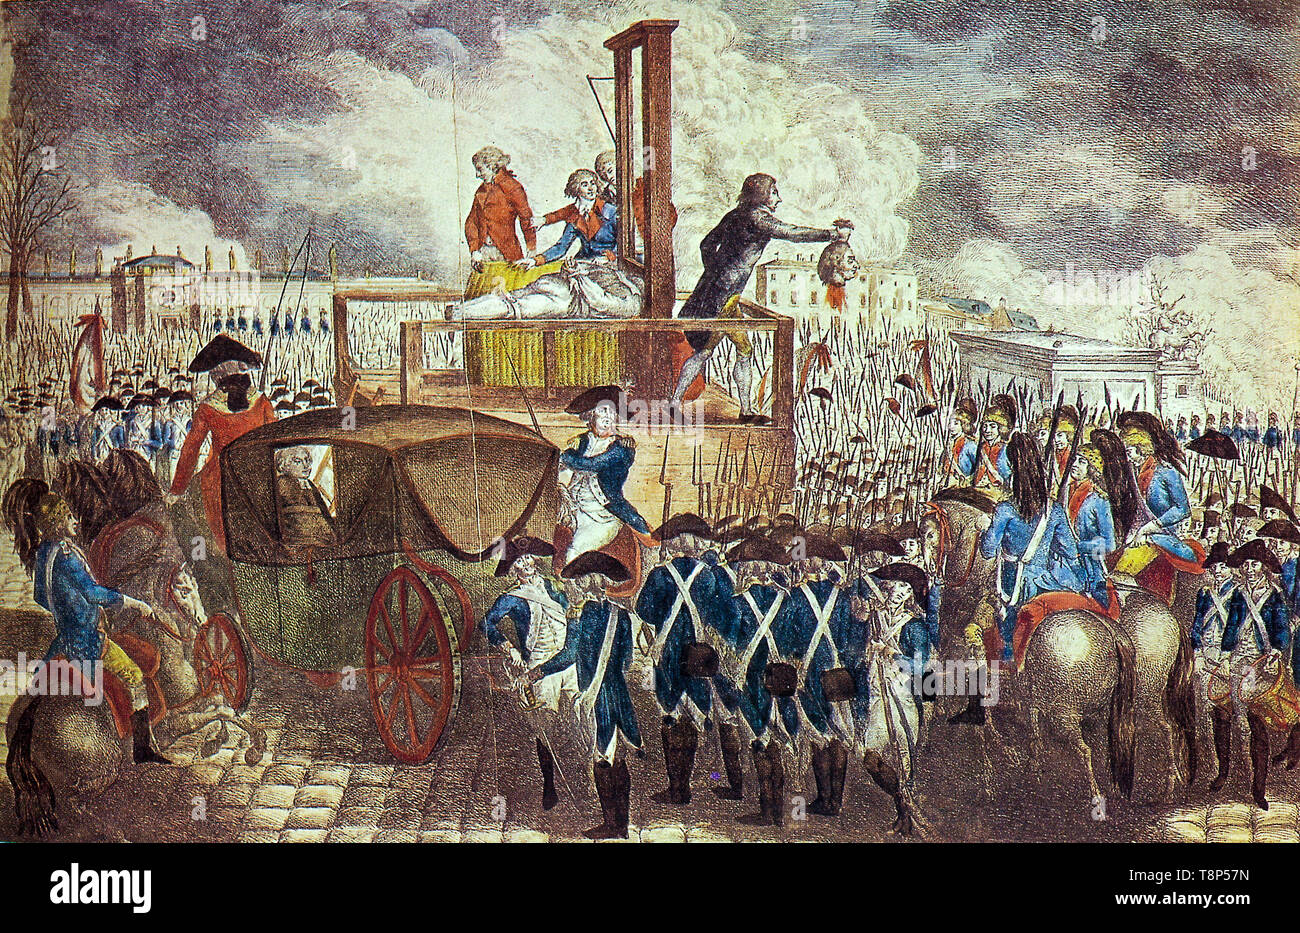 French Revolution. The Death of Louis XVI. Execution of Louis XVI on the Guillotine, copperplate engraving by Georg Heinrich Sieveking, 1793 Stock Photo